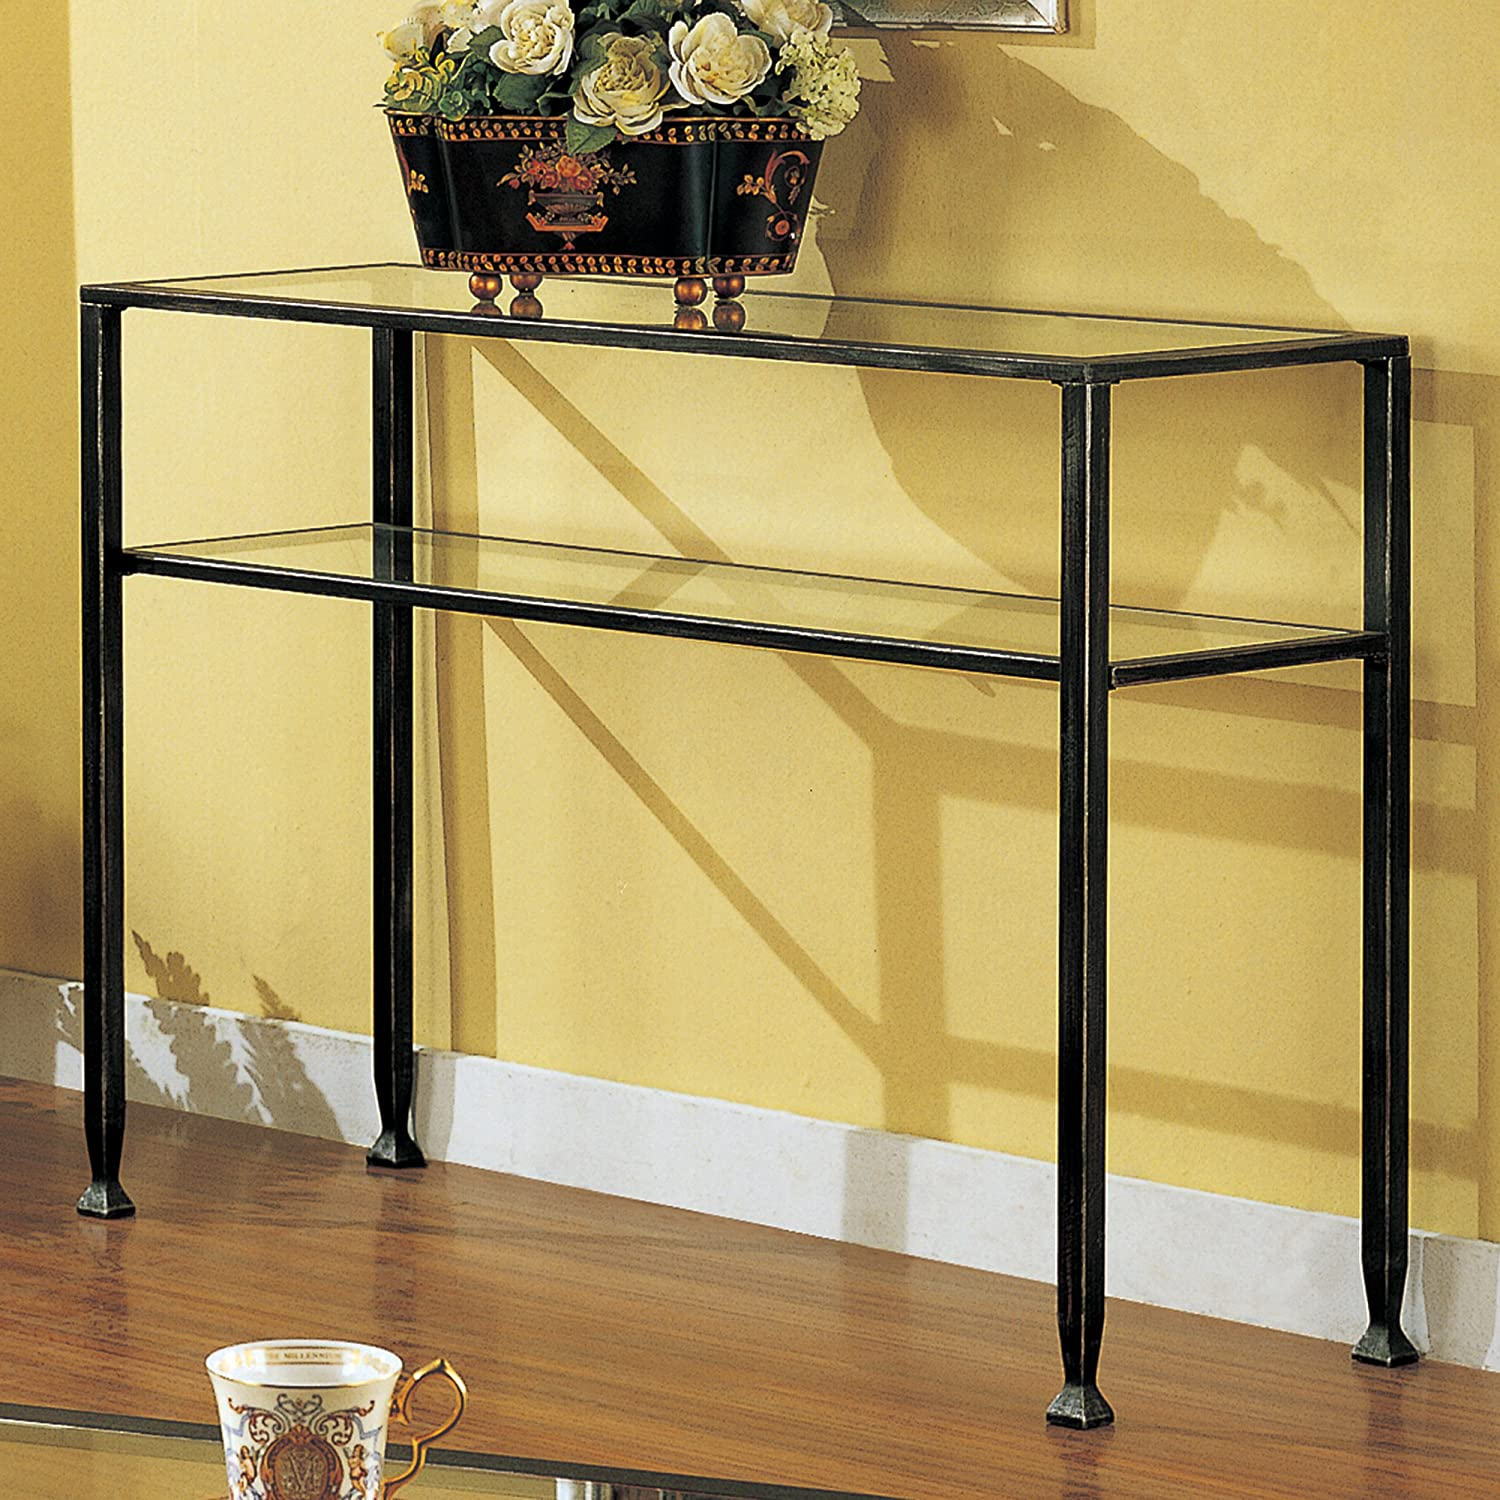 Amazon Southern Enterprises Sofa Console Table Black with